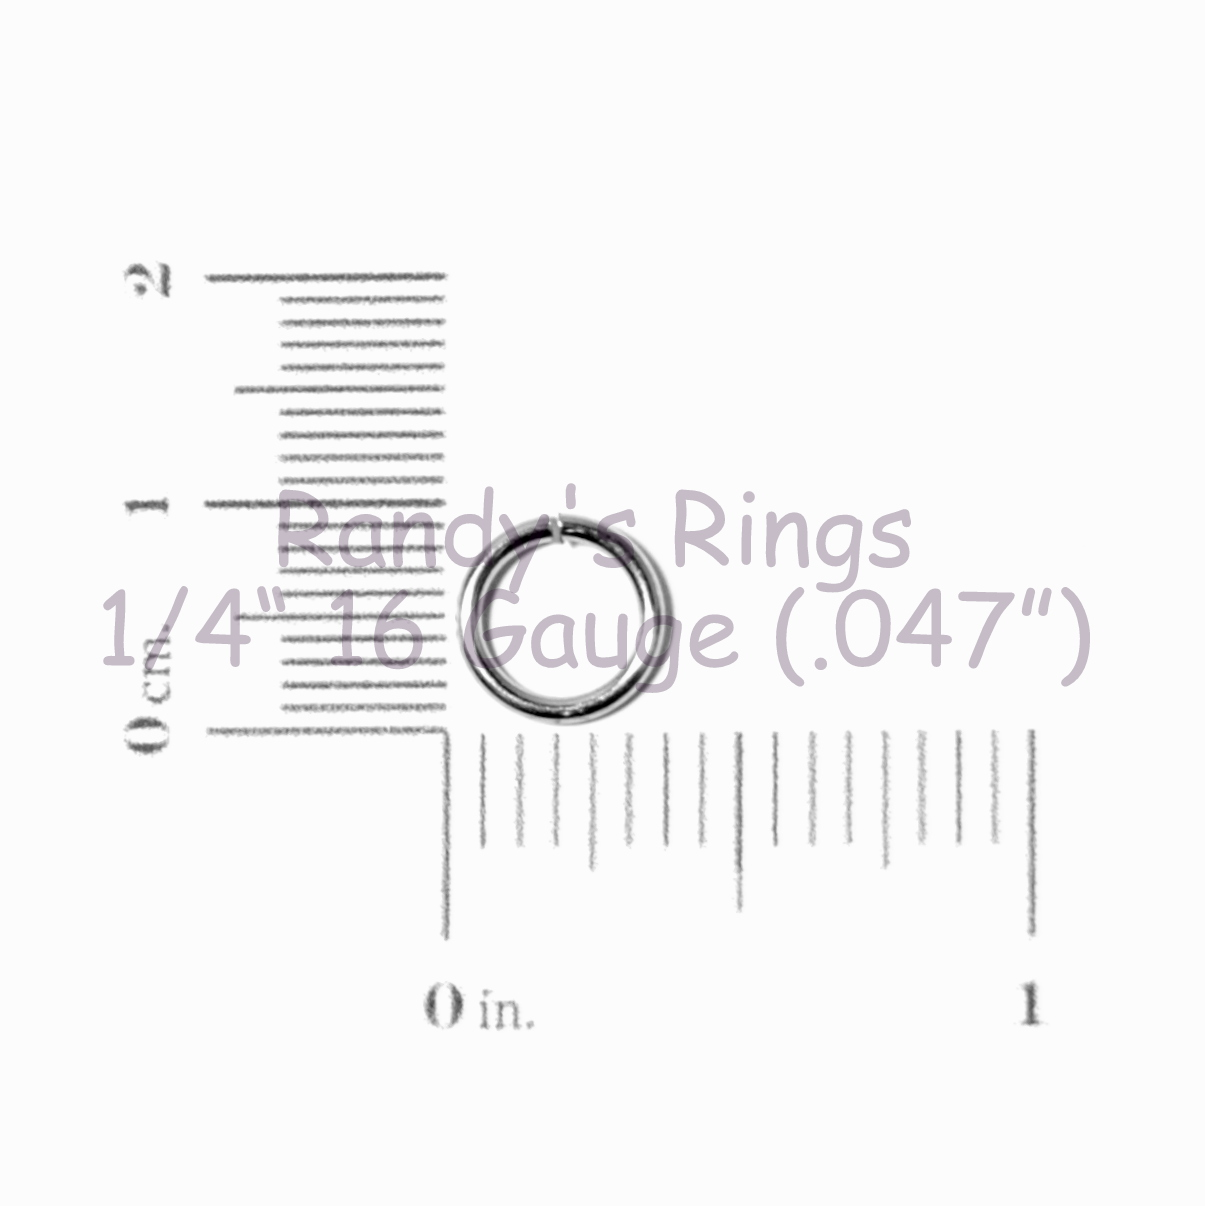 Randy S Rings Gt 1 4 16 Gauge 047 Jump Rings Sample